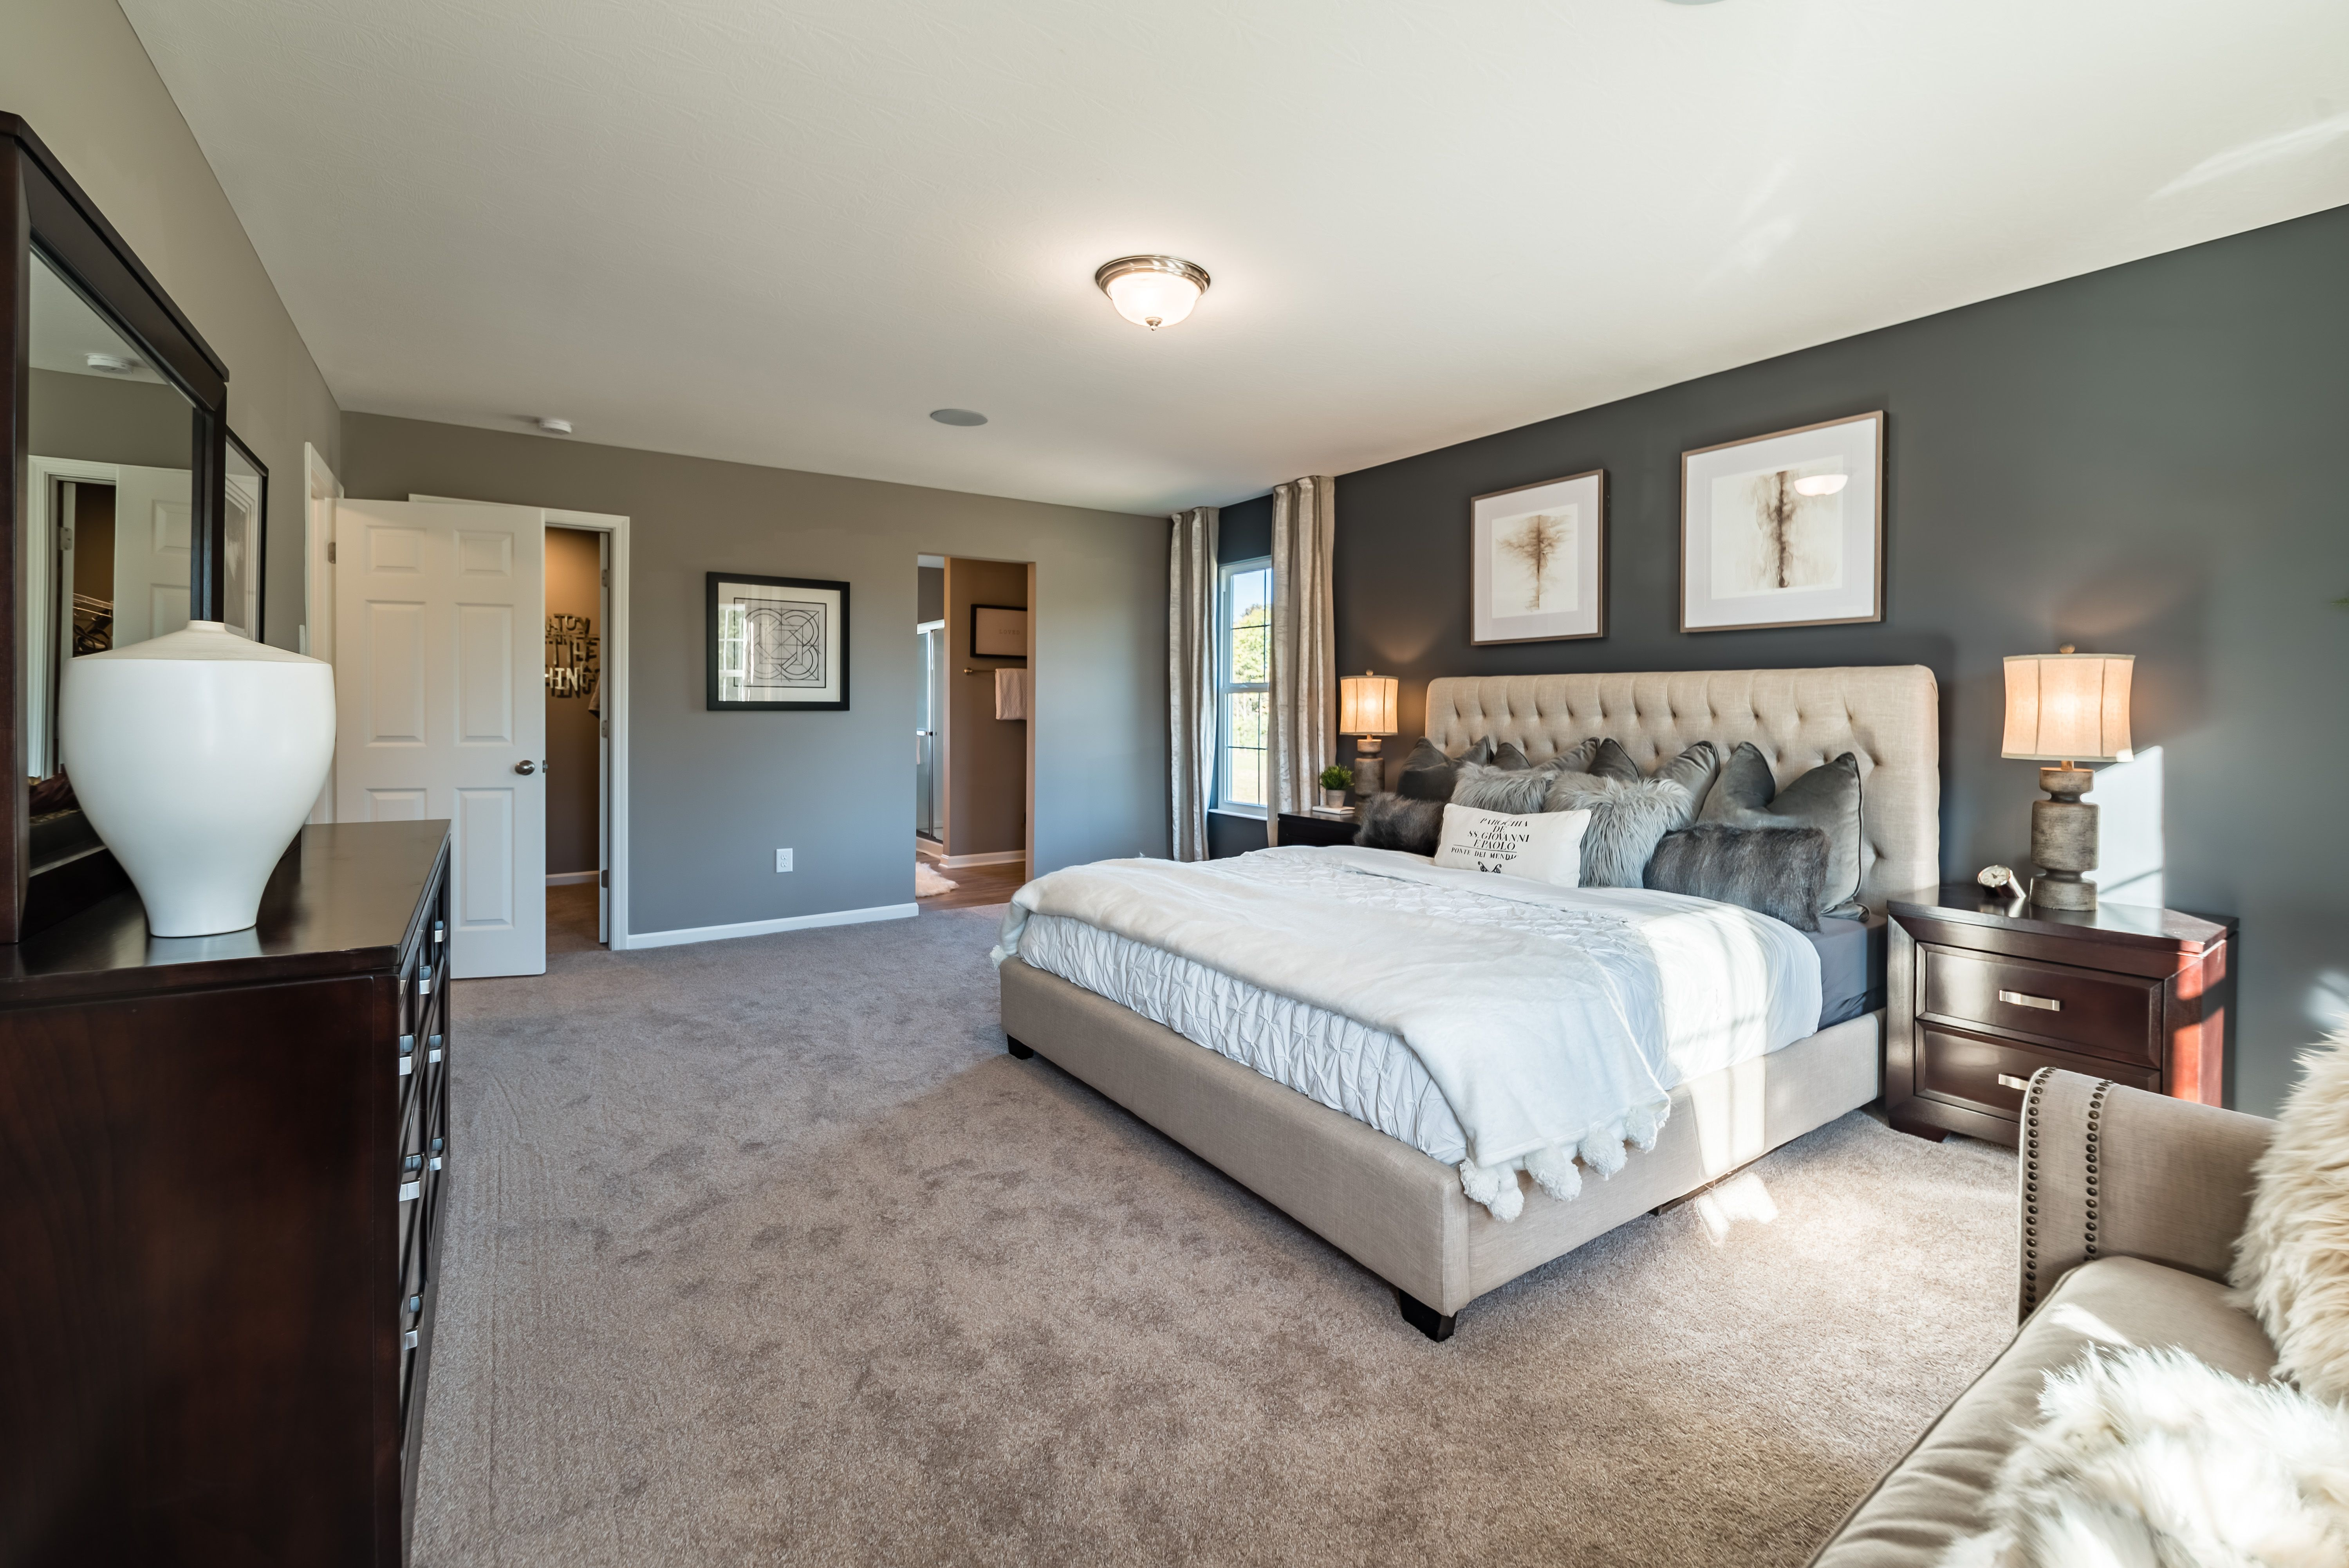 Bedroom featured in the Yosemite By Fischer Homes  in Louisville, KY